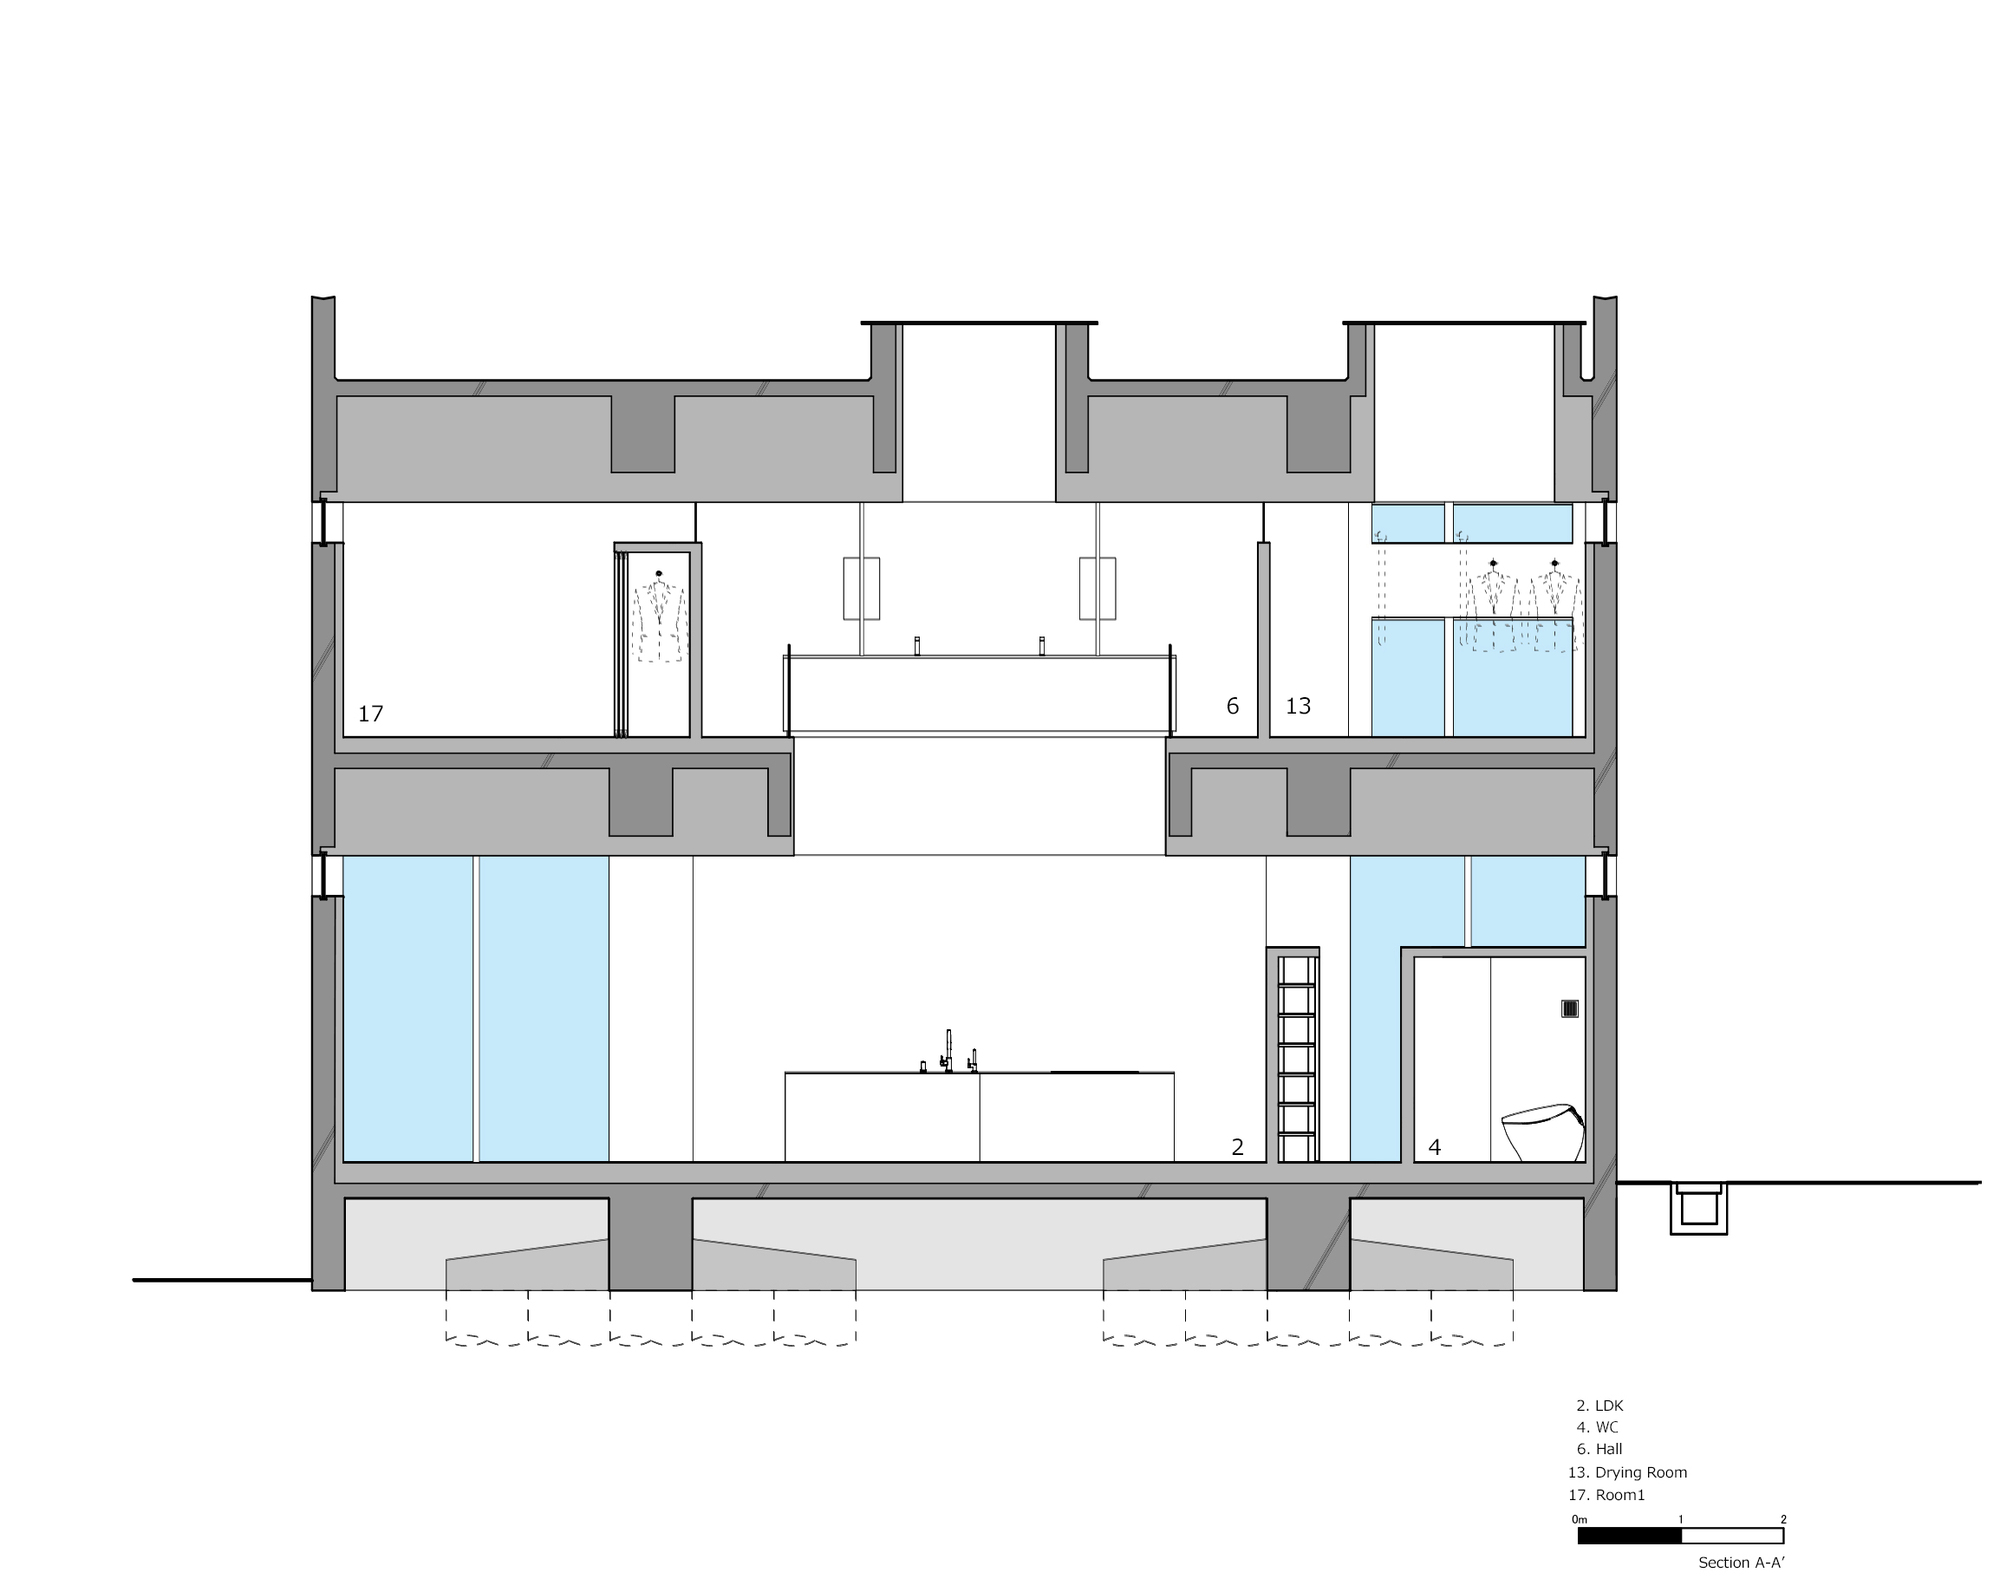 m8 _House_In_Takamatsu_Section01_A-A__ENG.jpg